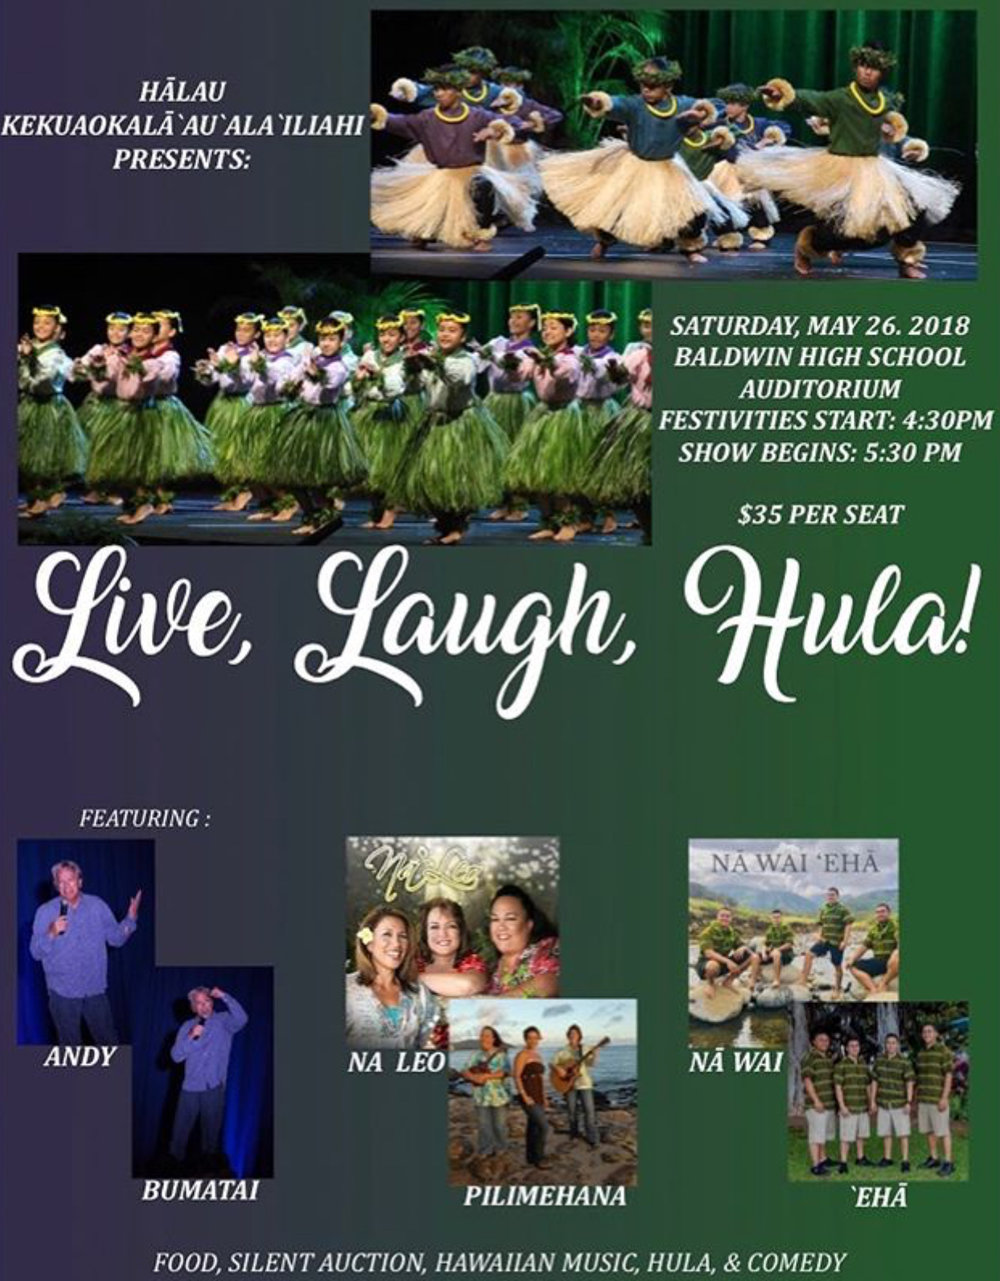 live, laugh, hula 5-26.jpg